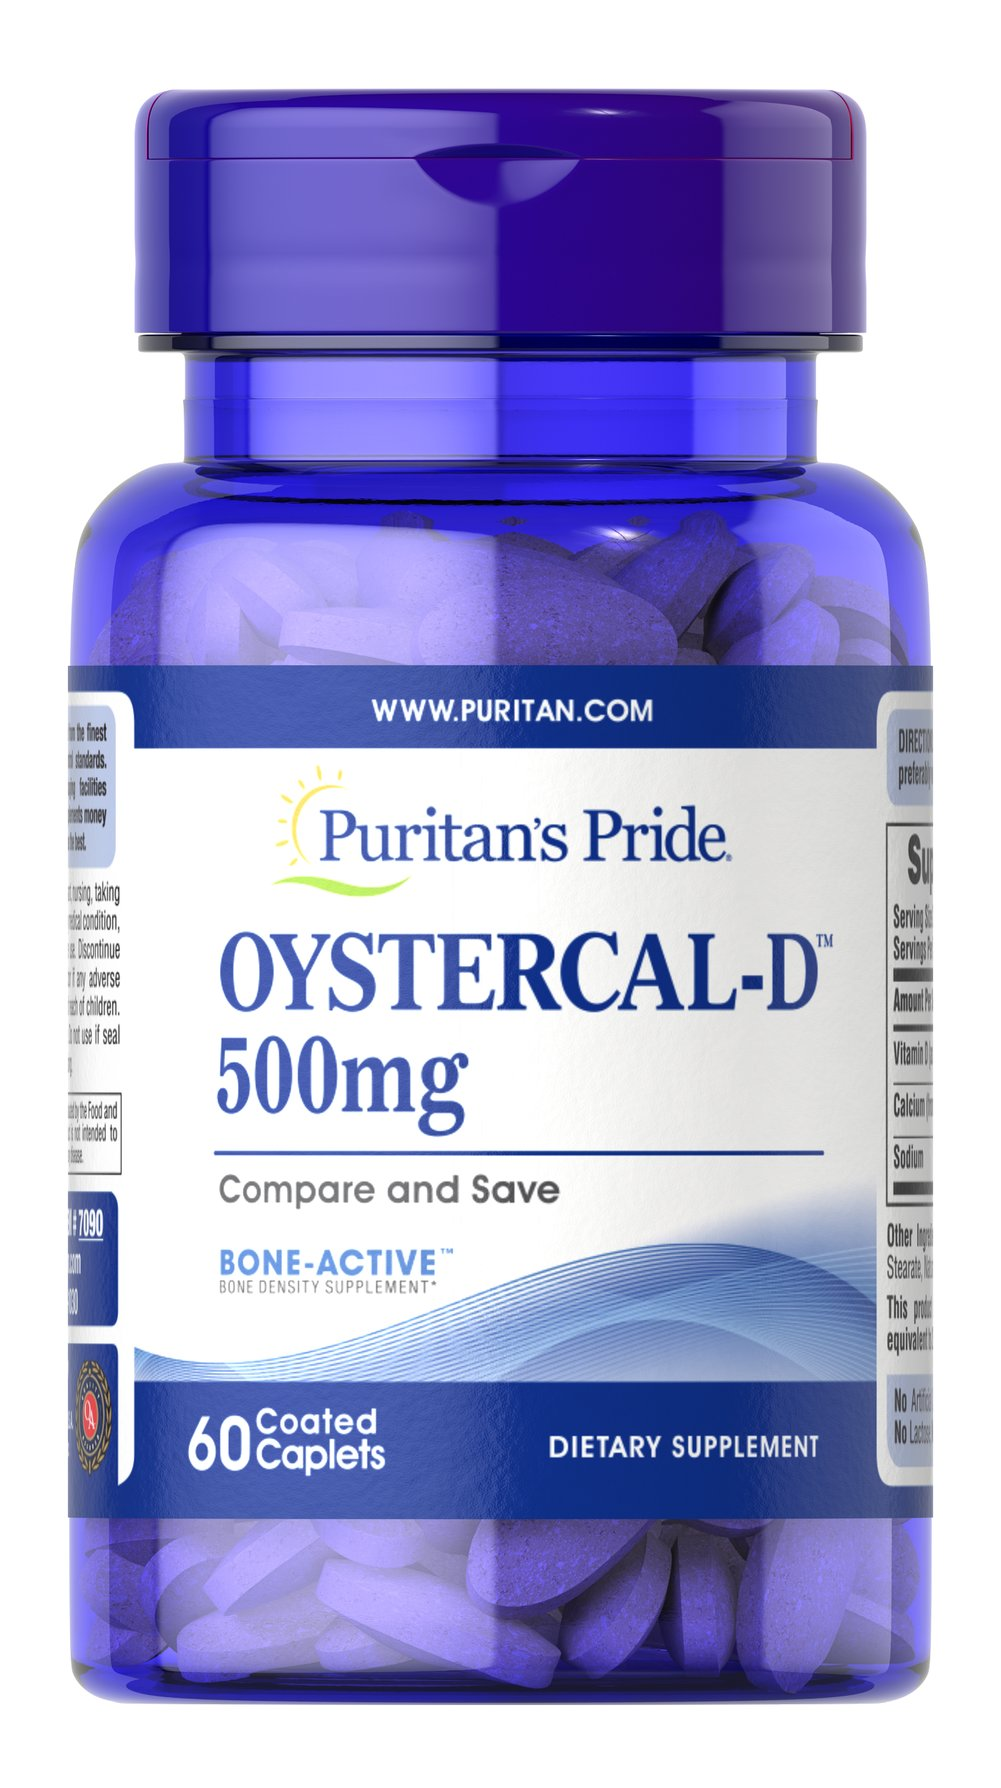 Oystercal-D™ 500 mg <p>It's time to bone-up on bone health! Our Oyster-Cal formula is a good choice for helping your maintain bone health.** It's sourced from oyster shells and delivers 500 mg of Calcium per serving, with the added value of Vitamin D to assist with absorption.**</p> 60 Caplets 500 mg $4.29